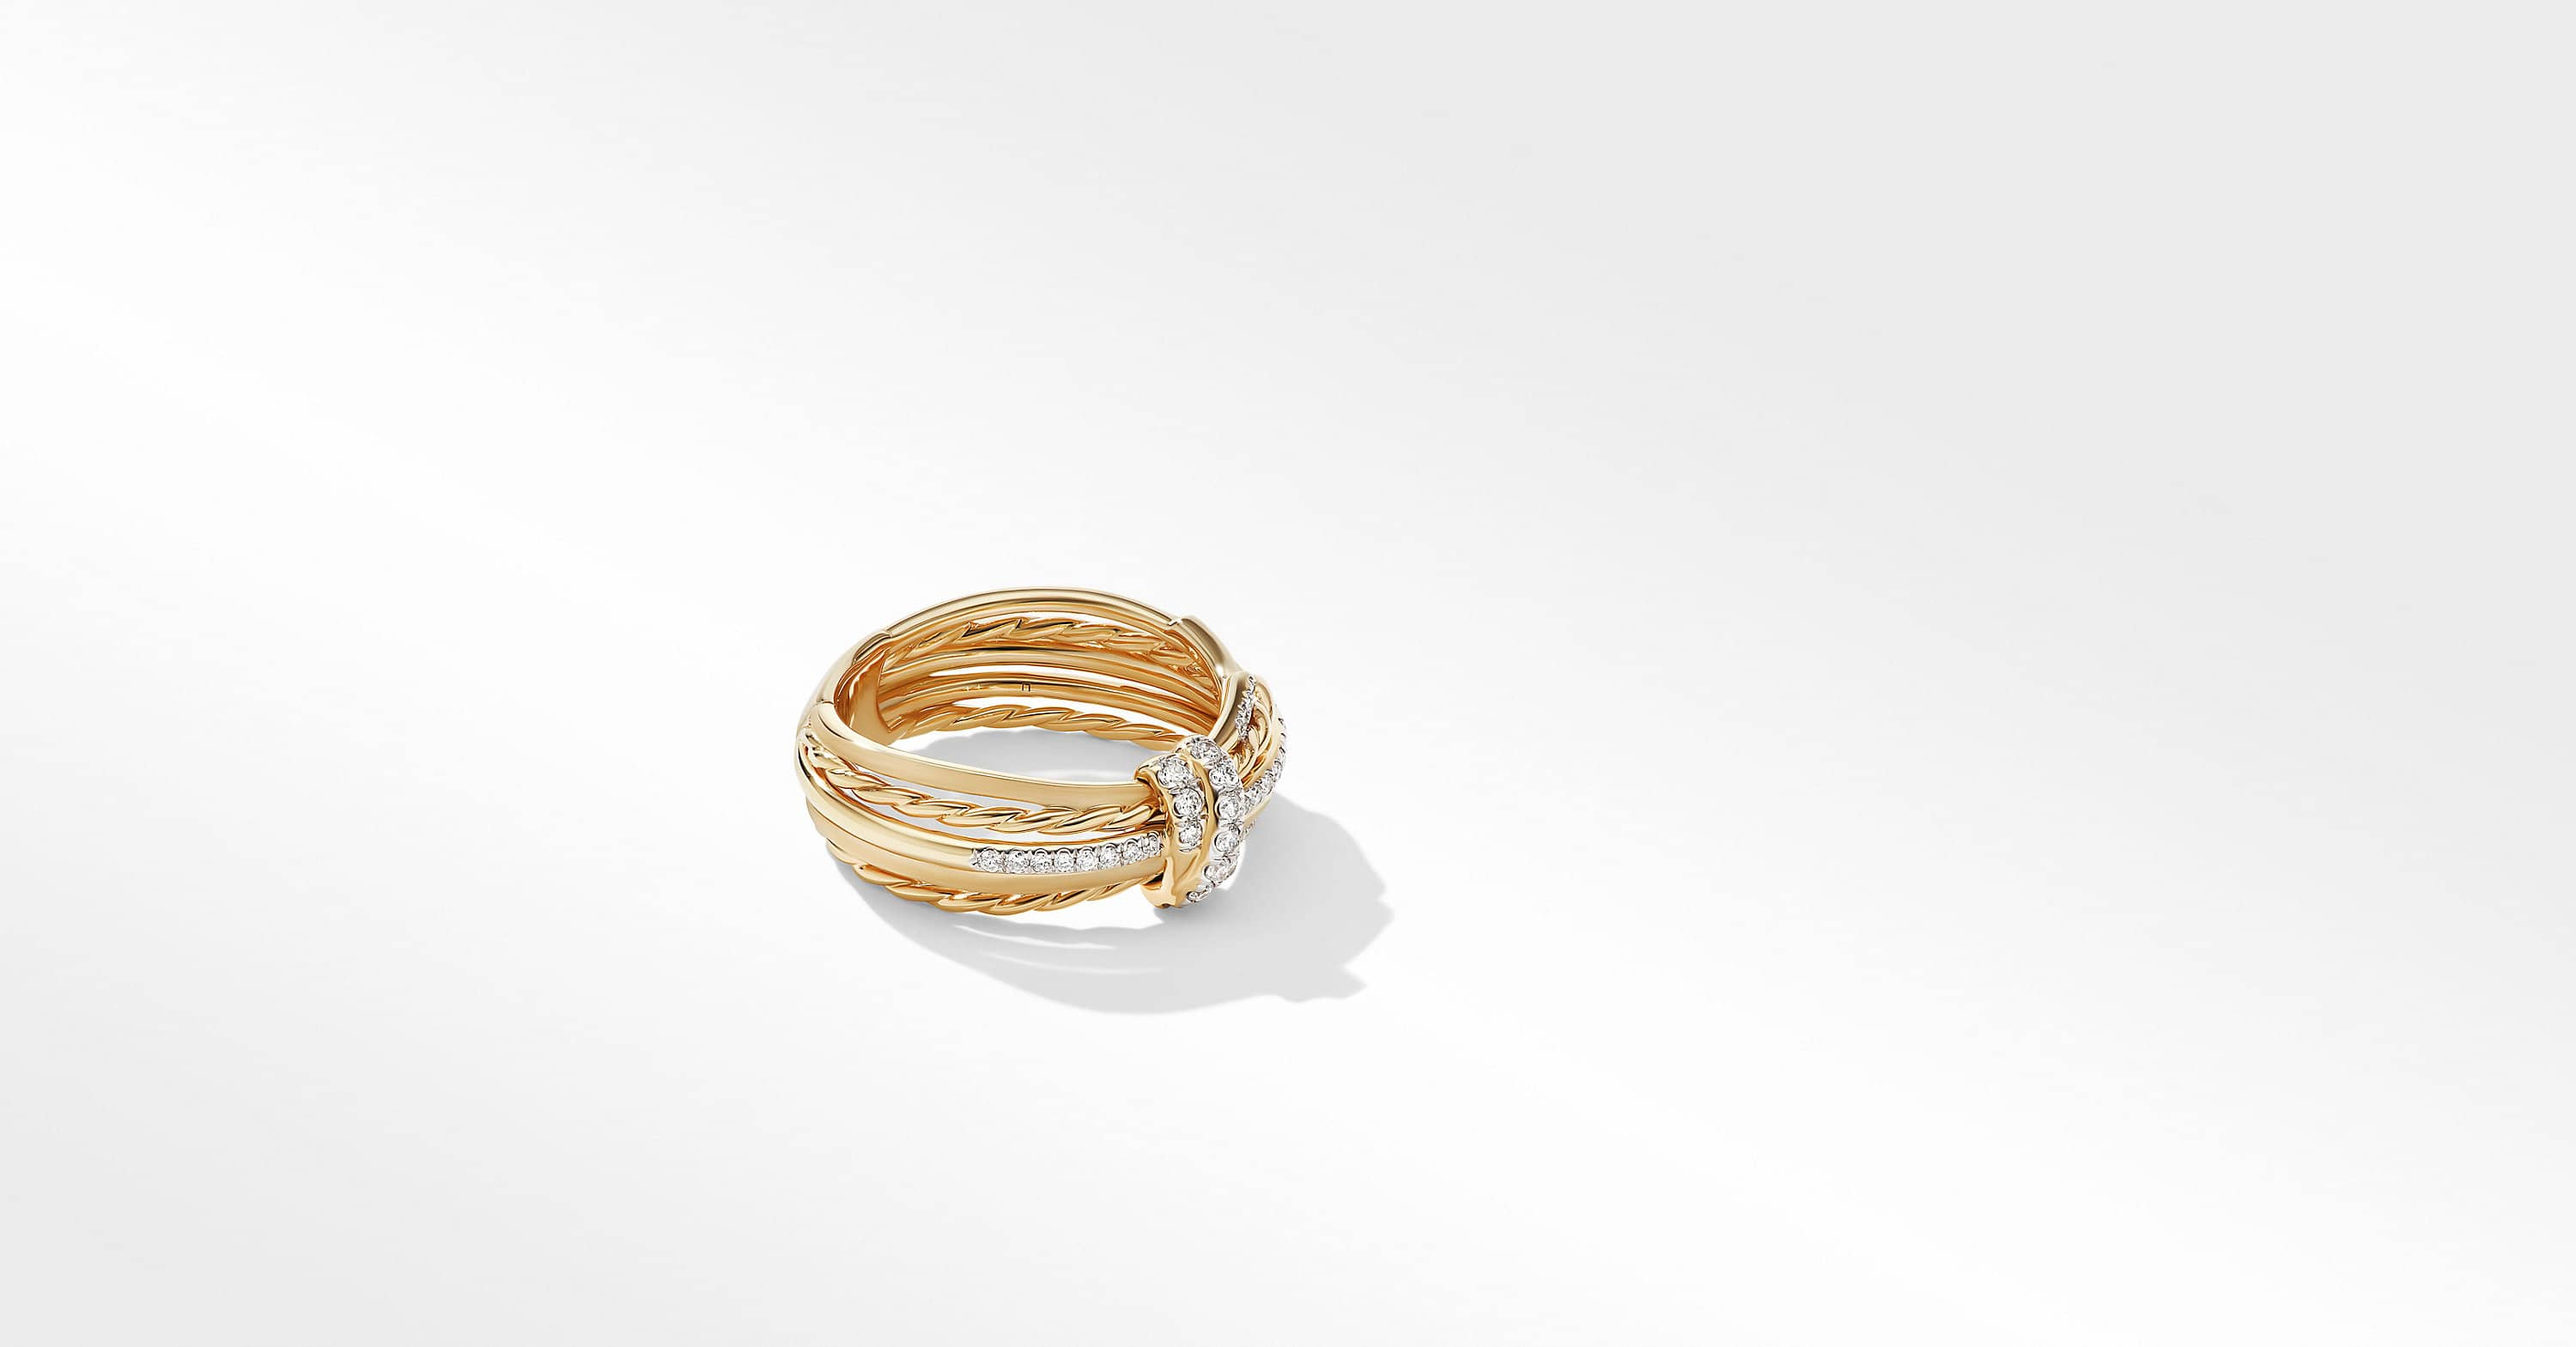 Angelika Ring in 18K Yellow Gold with Diamonds, 7.8mm